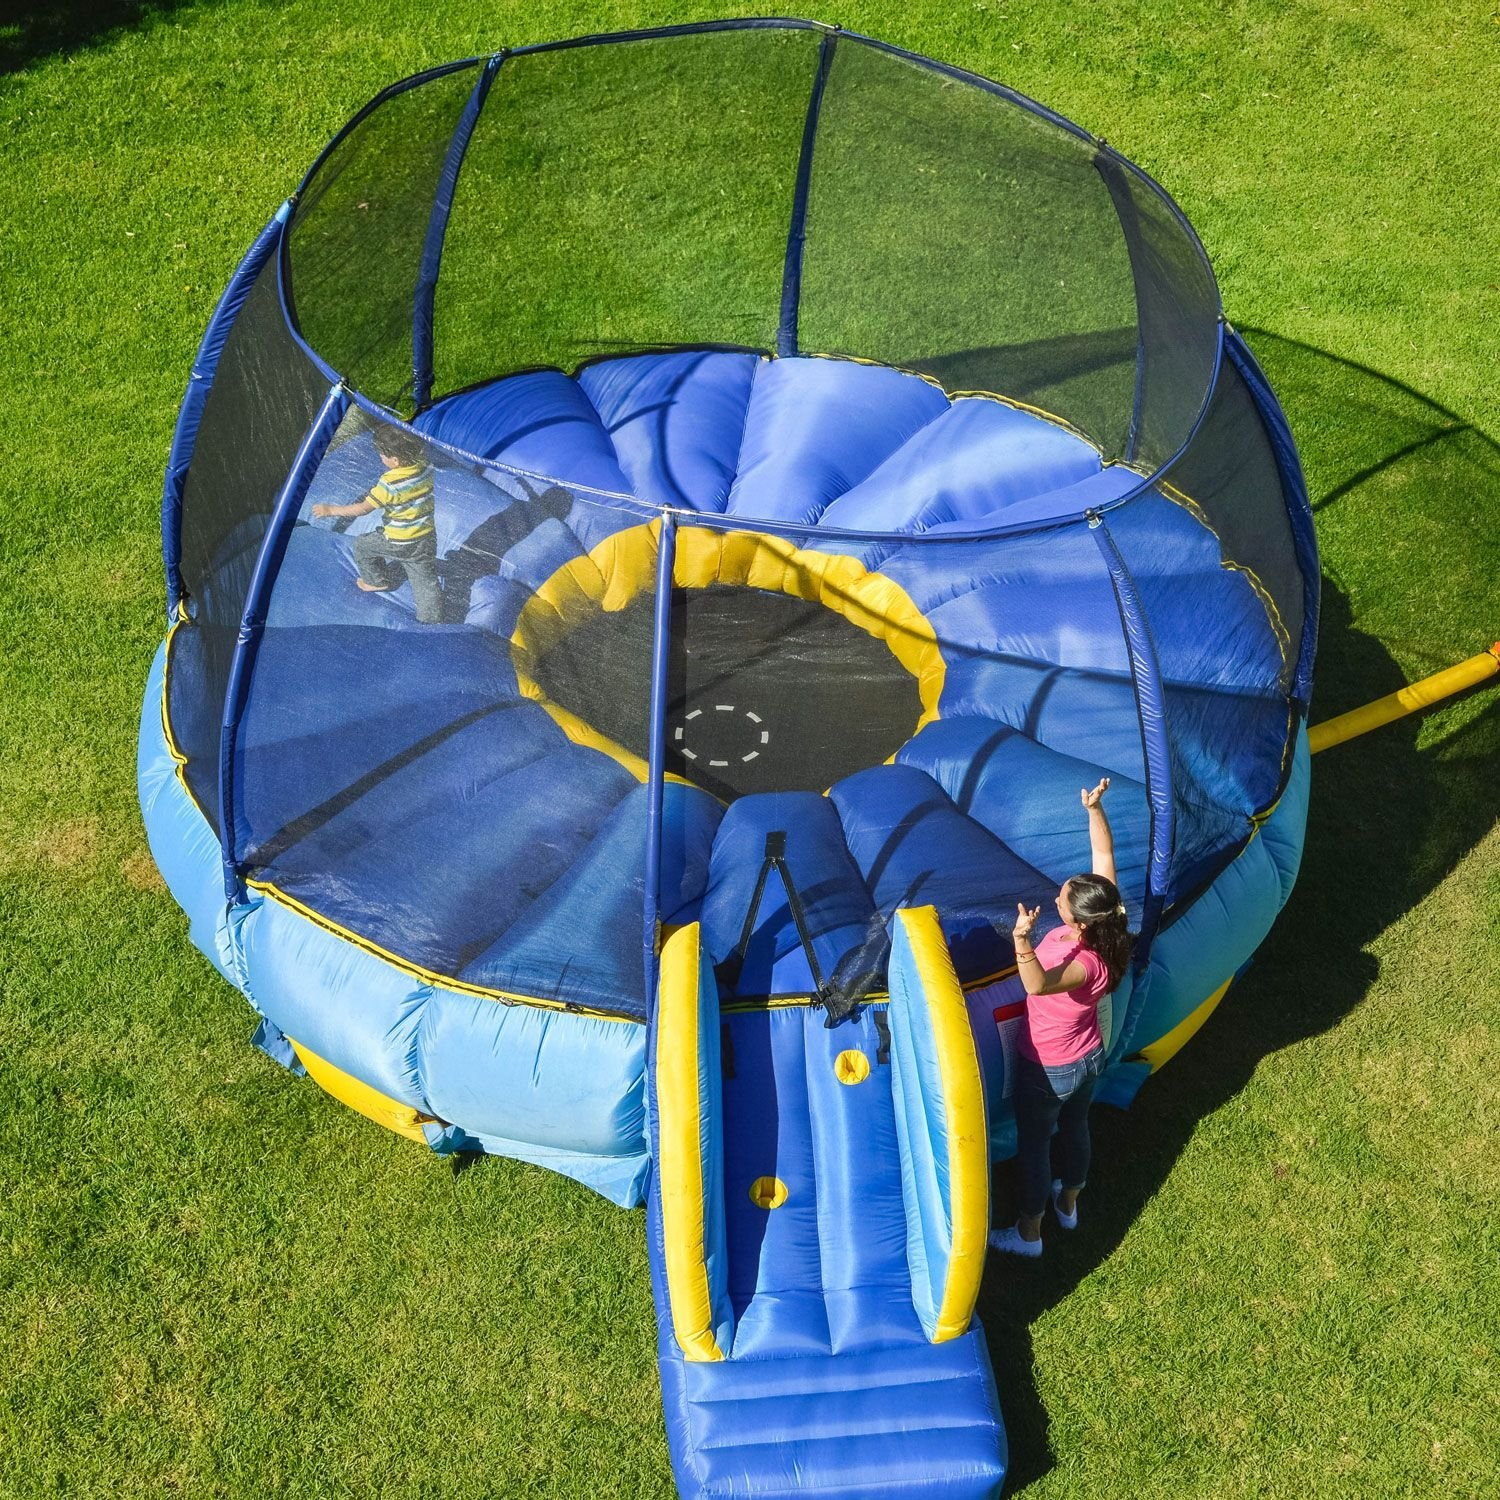 Bounce Superdome Trampoline and Bouncer